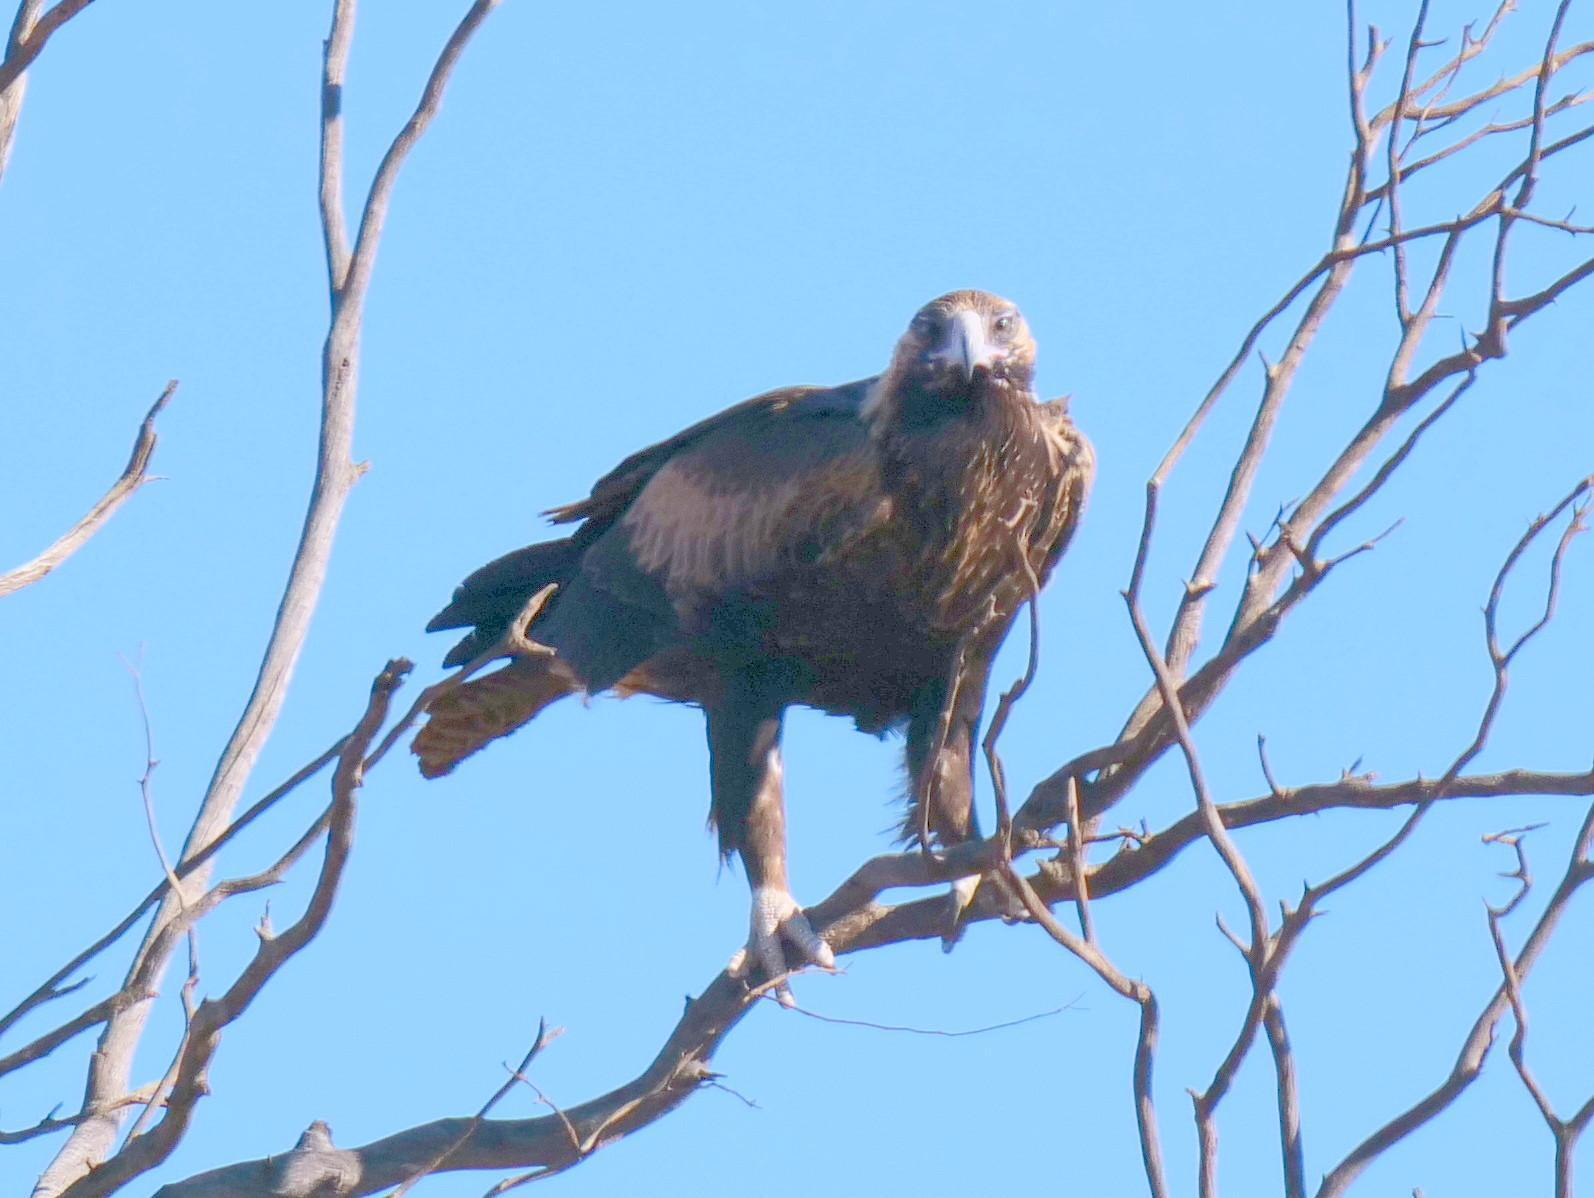 Wedge-tailed Eagle Photo by Peter Lowe